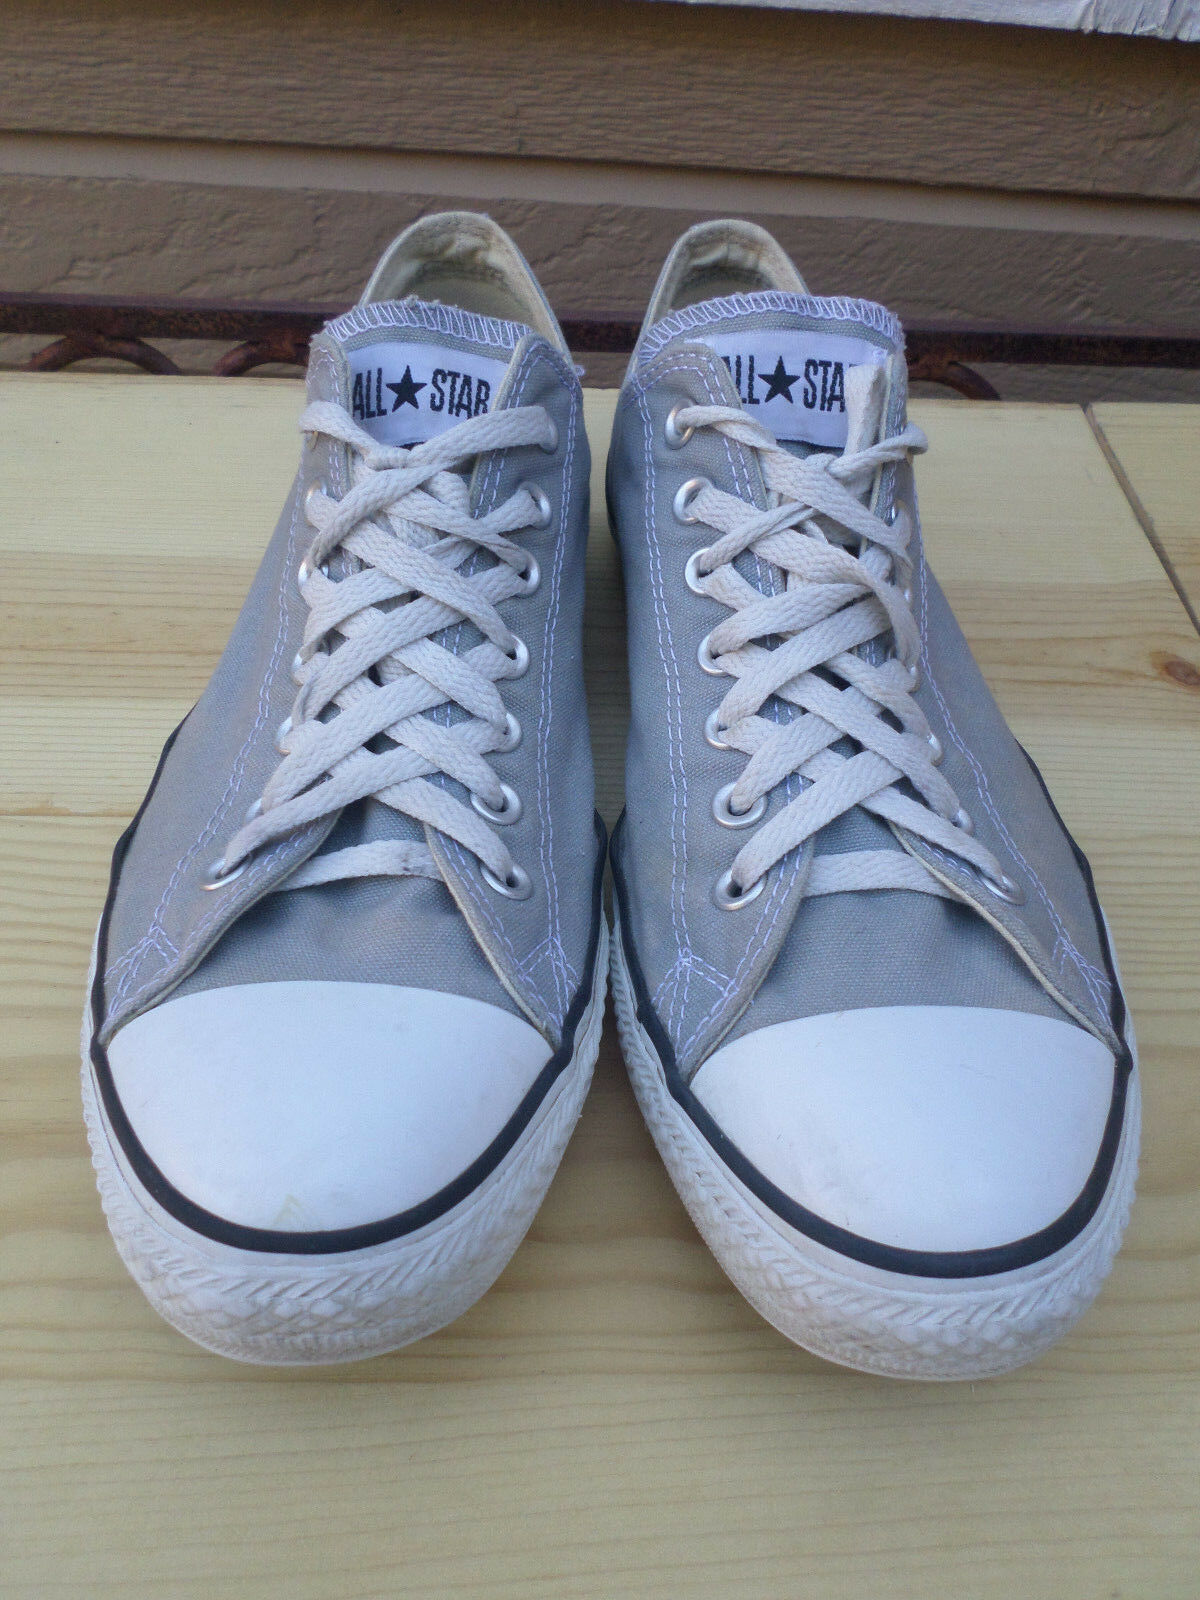 7a397b01c3d Converse All Star Star Star Gray Canvas Sneakers Men s 11 5d03a0 ...